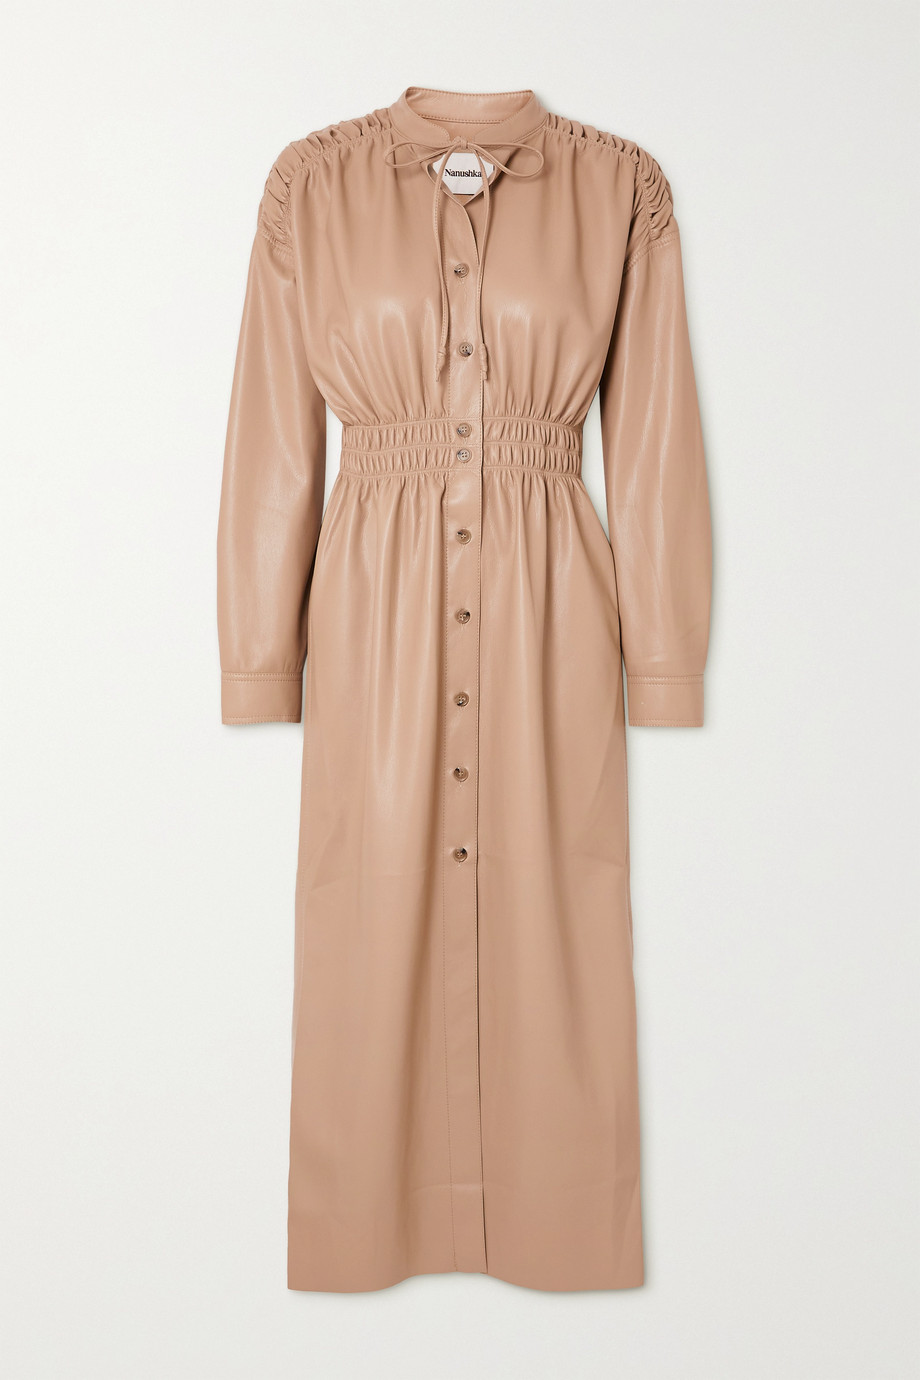 NANUSHKA Jayce ruched vegan leather shirt dress